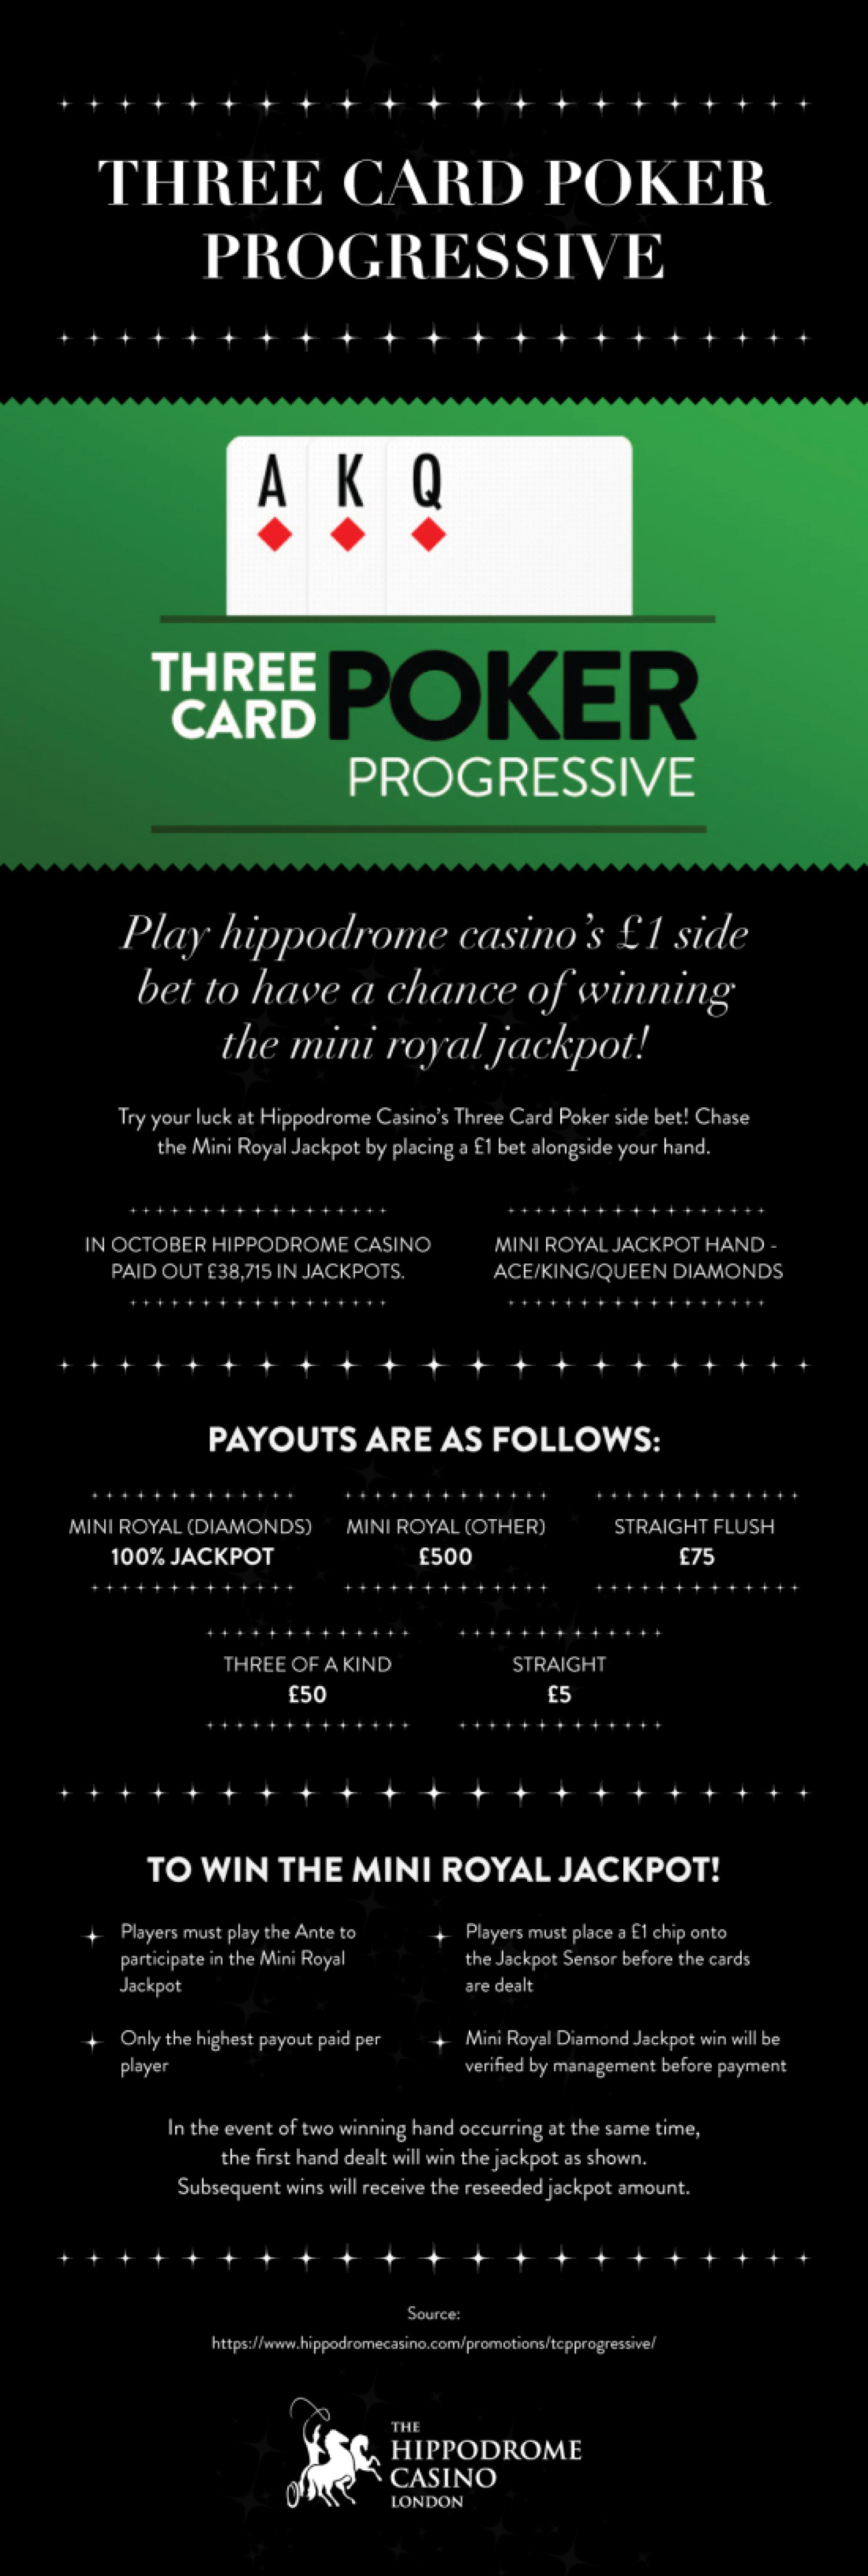 Three Card Poker Progressive - Hippodrome Casino Infographic